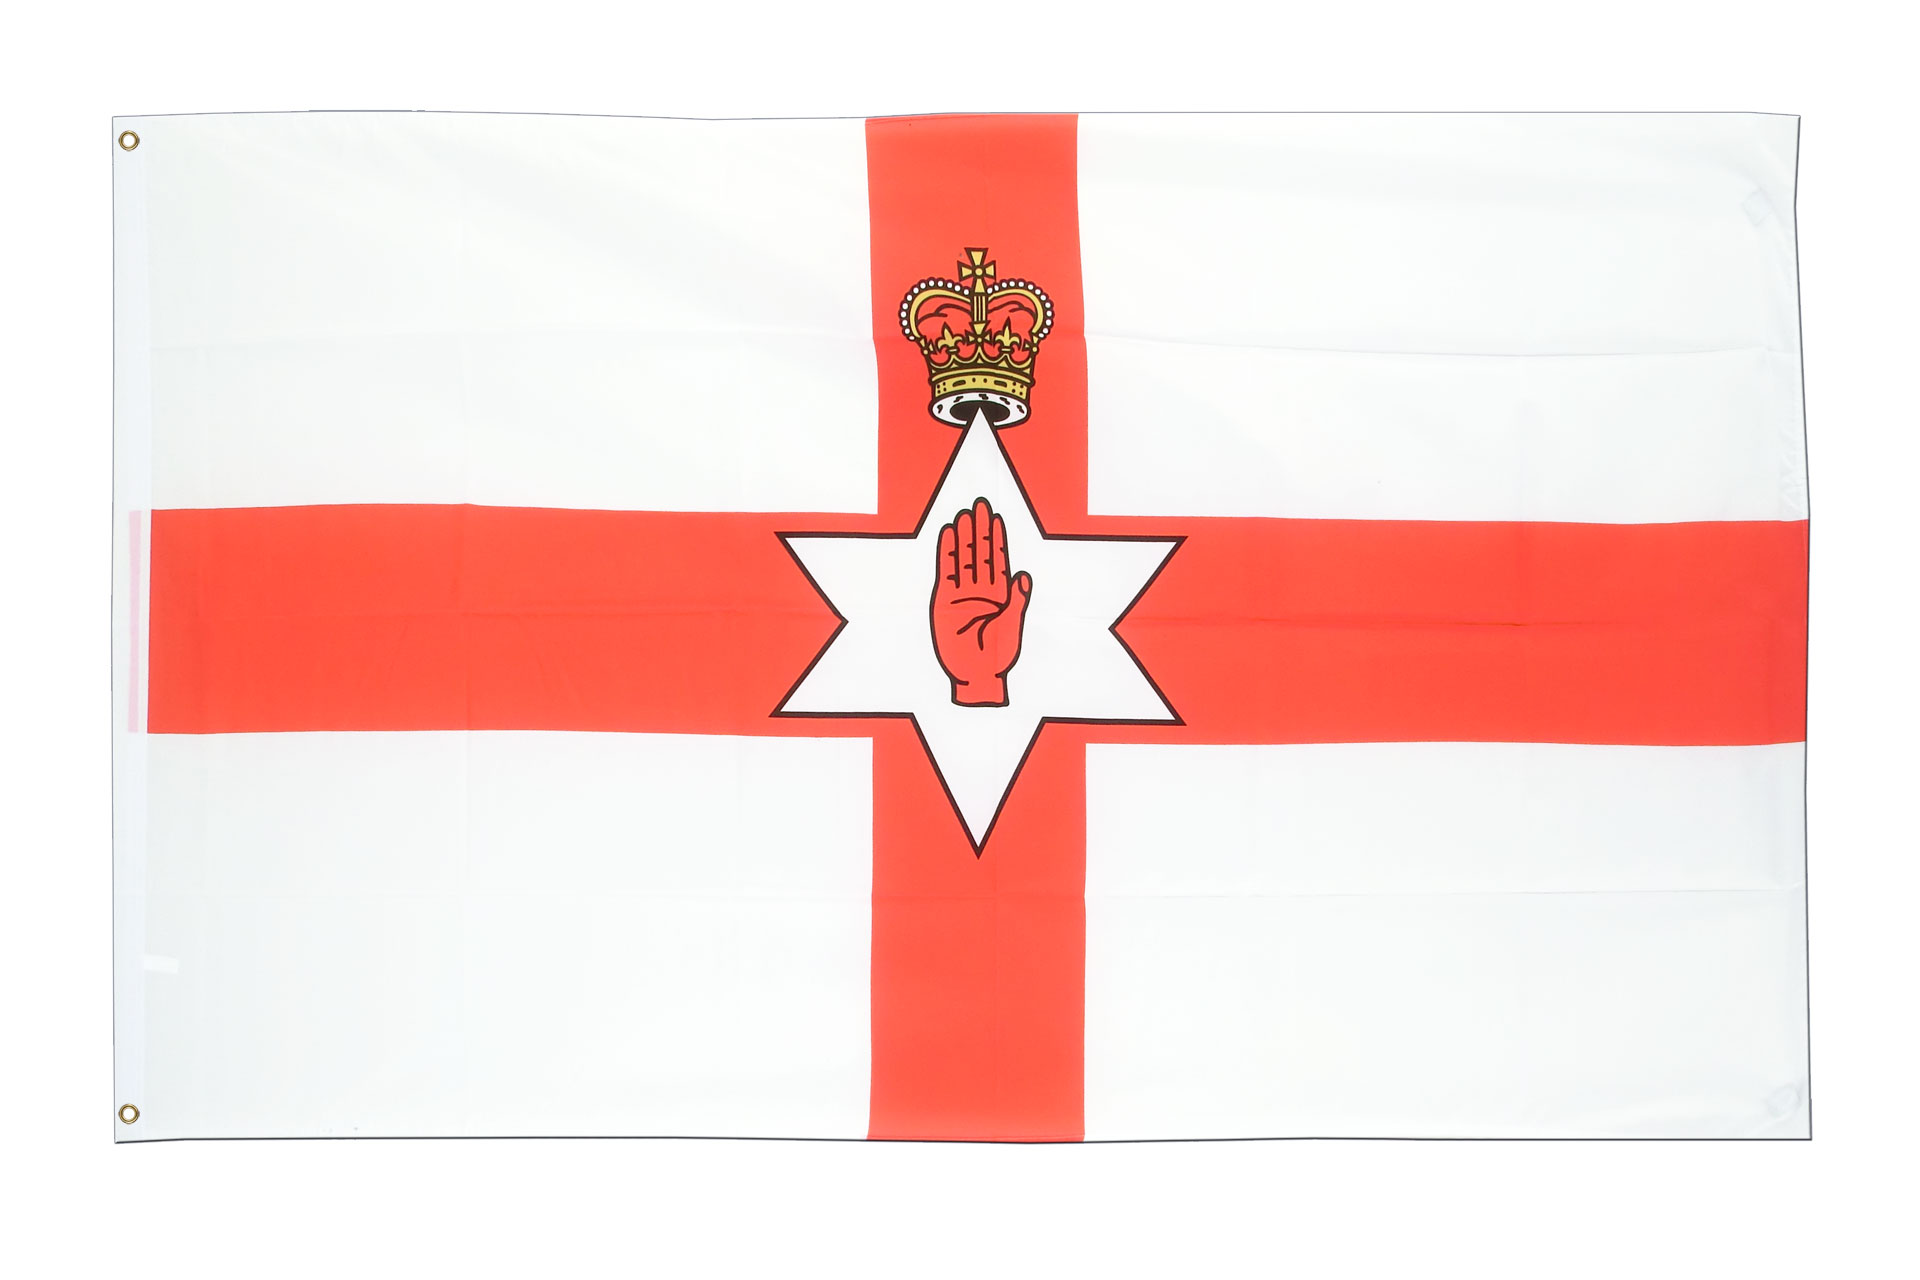 buy northern ireland flag 3x5 ft 90x150 cm royal flags